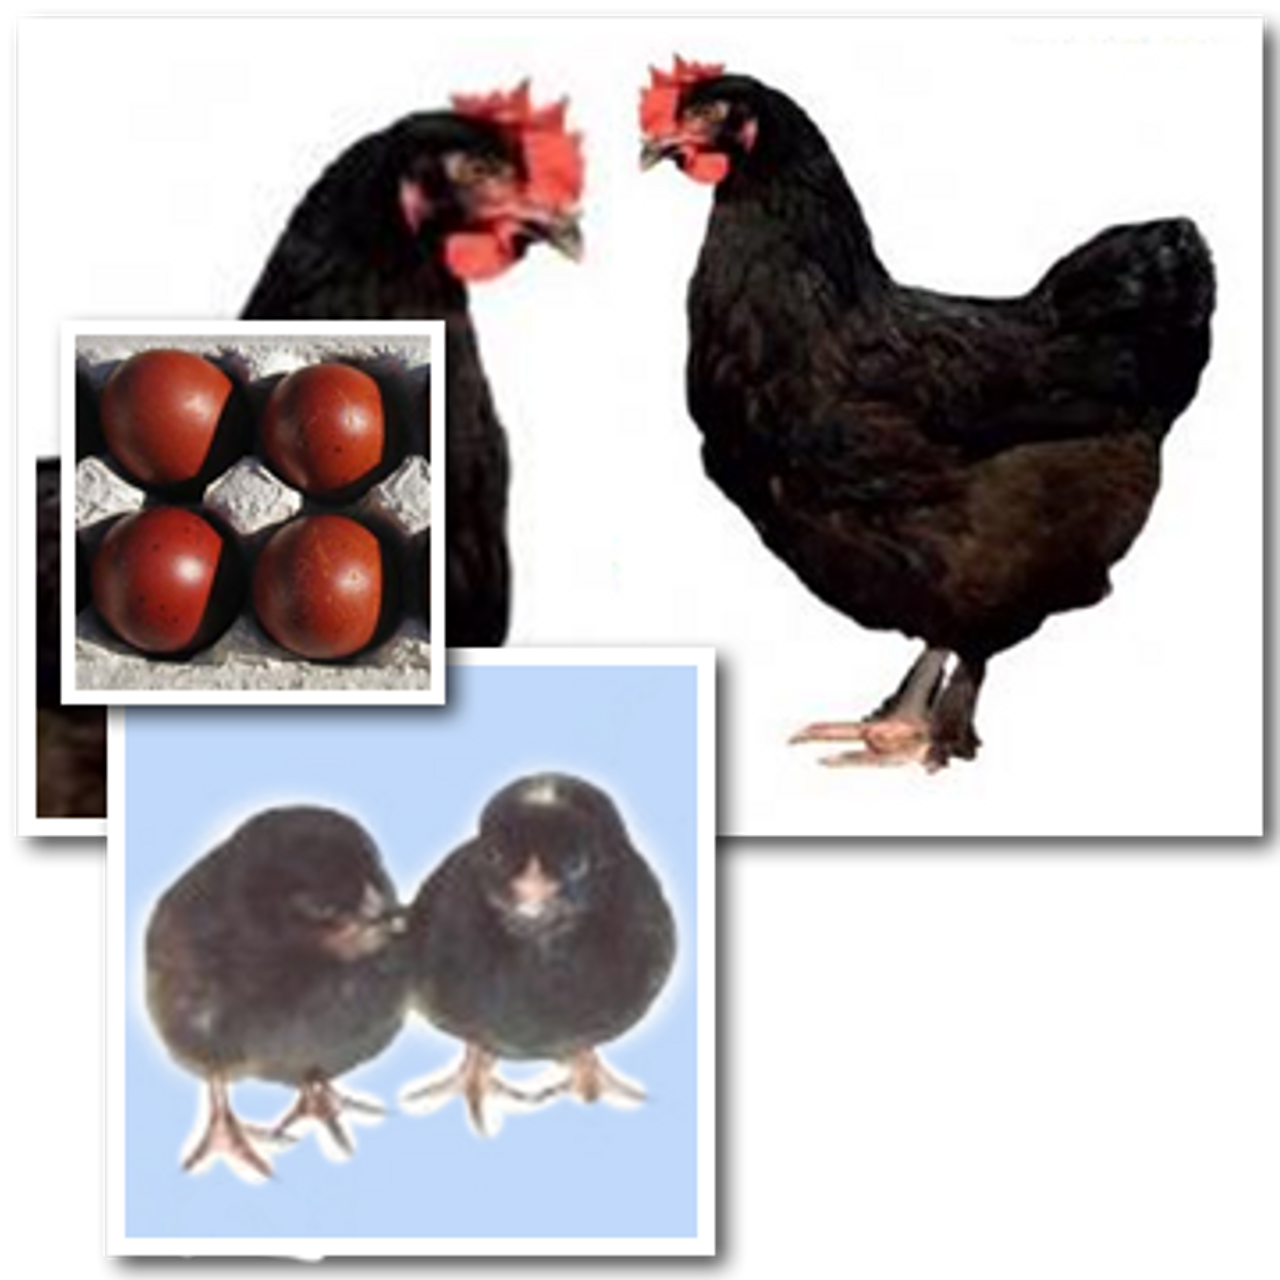 This unique breed, imported from the Czech Republic, is a proprietary heritage/hybrid cross between a Black Copper Maran male and a Barred Rock female. With a feather color that resembles that of a Copper Maran, this breed forages well. It will produce an impressive 290+ large copper-to-dark chocolate-colored eggs per calendar year, which is exceptional for a breed that lays dark eggs. The Dominant Copper is an excellent balance of beautiful eggs and efficiency. Color sexable at hatch.| EGG COLOR: BROWN | MATURE WT: MALE 6 LBS. FEMALE 4.5 LBS.